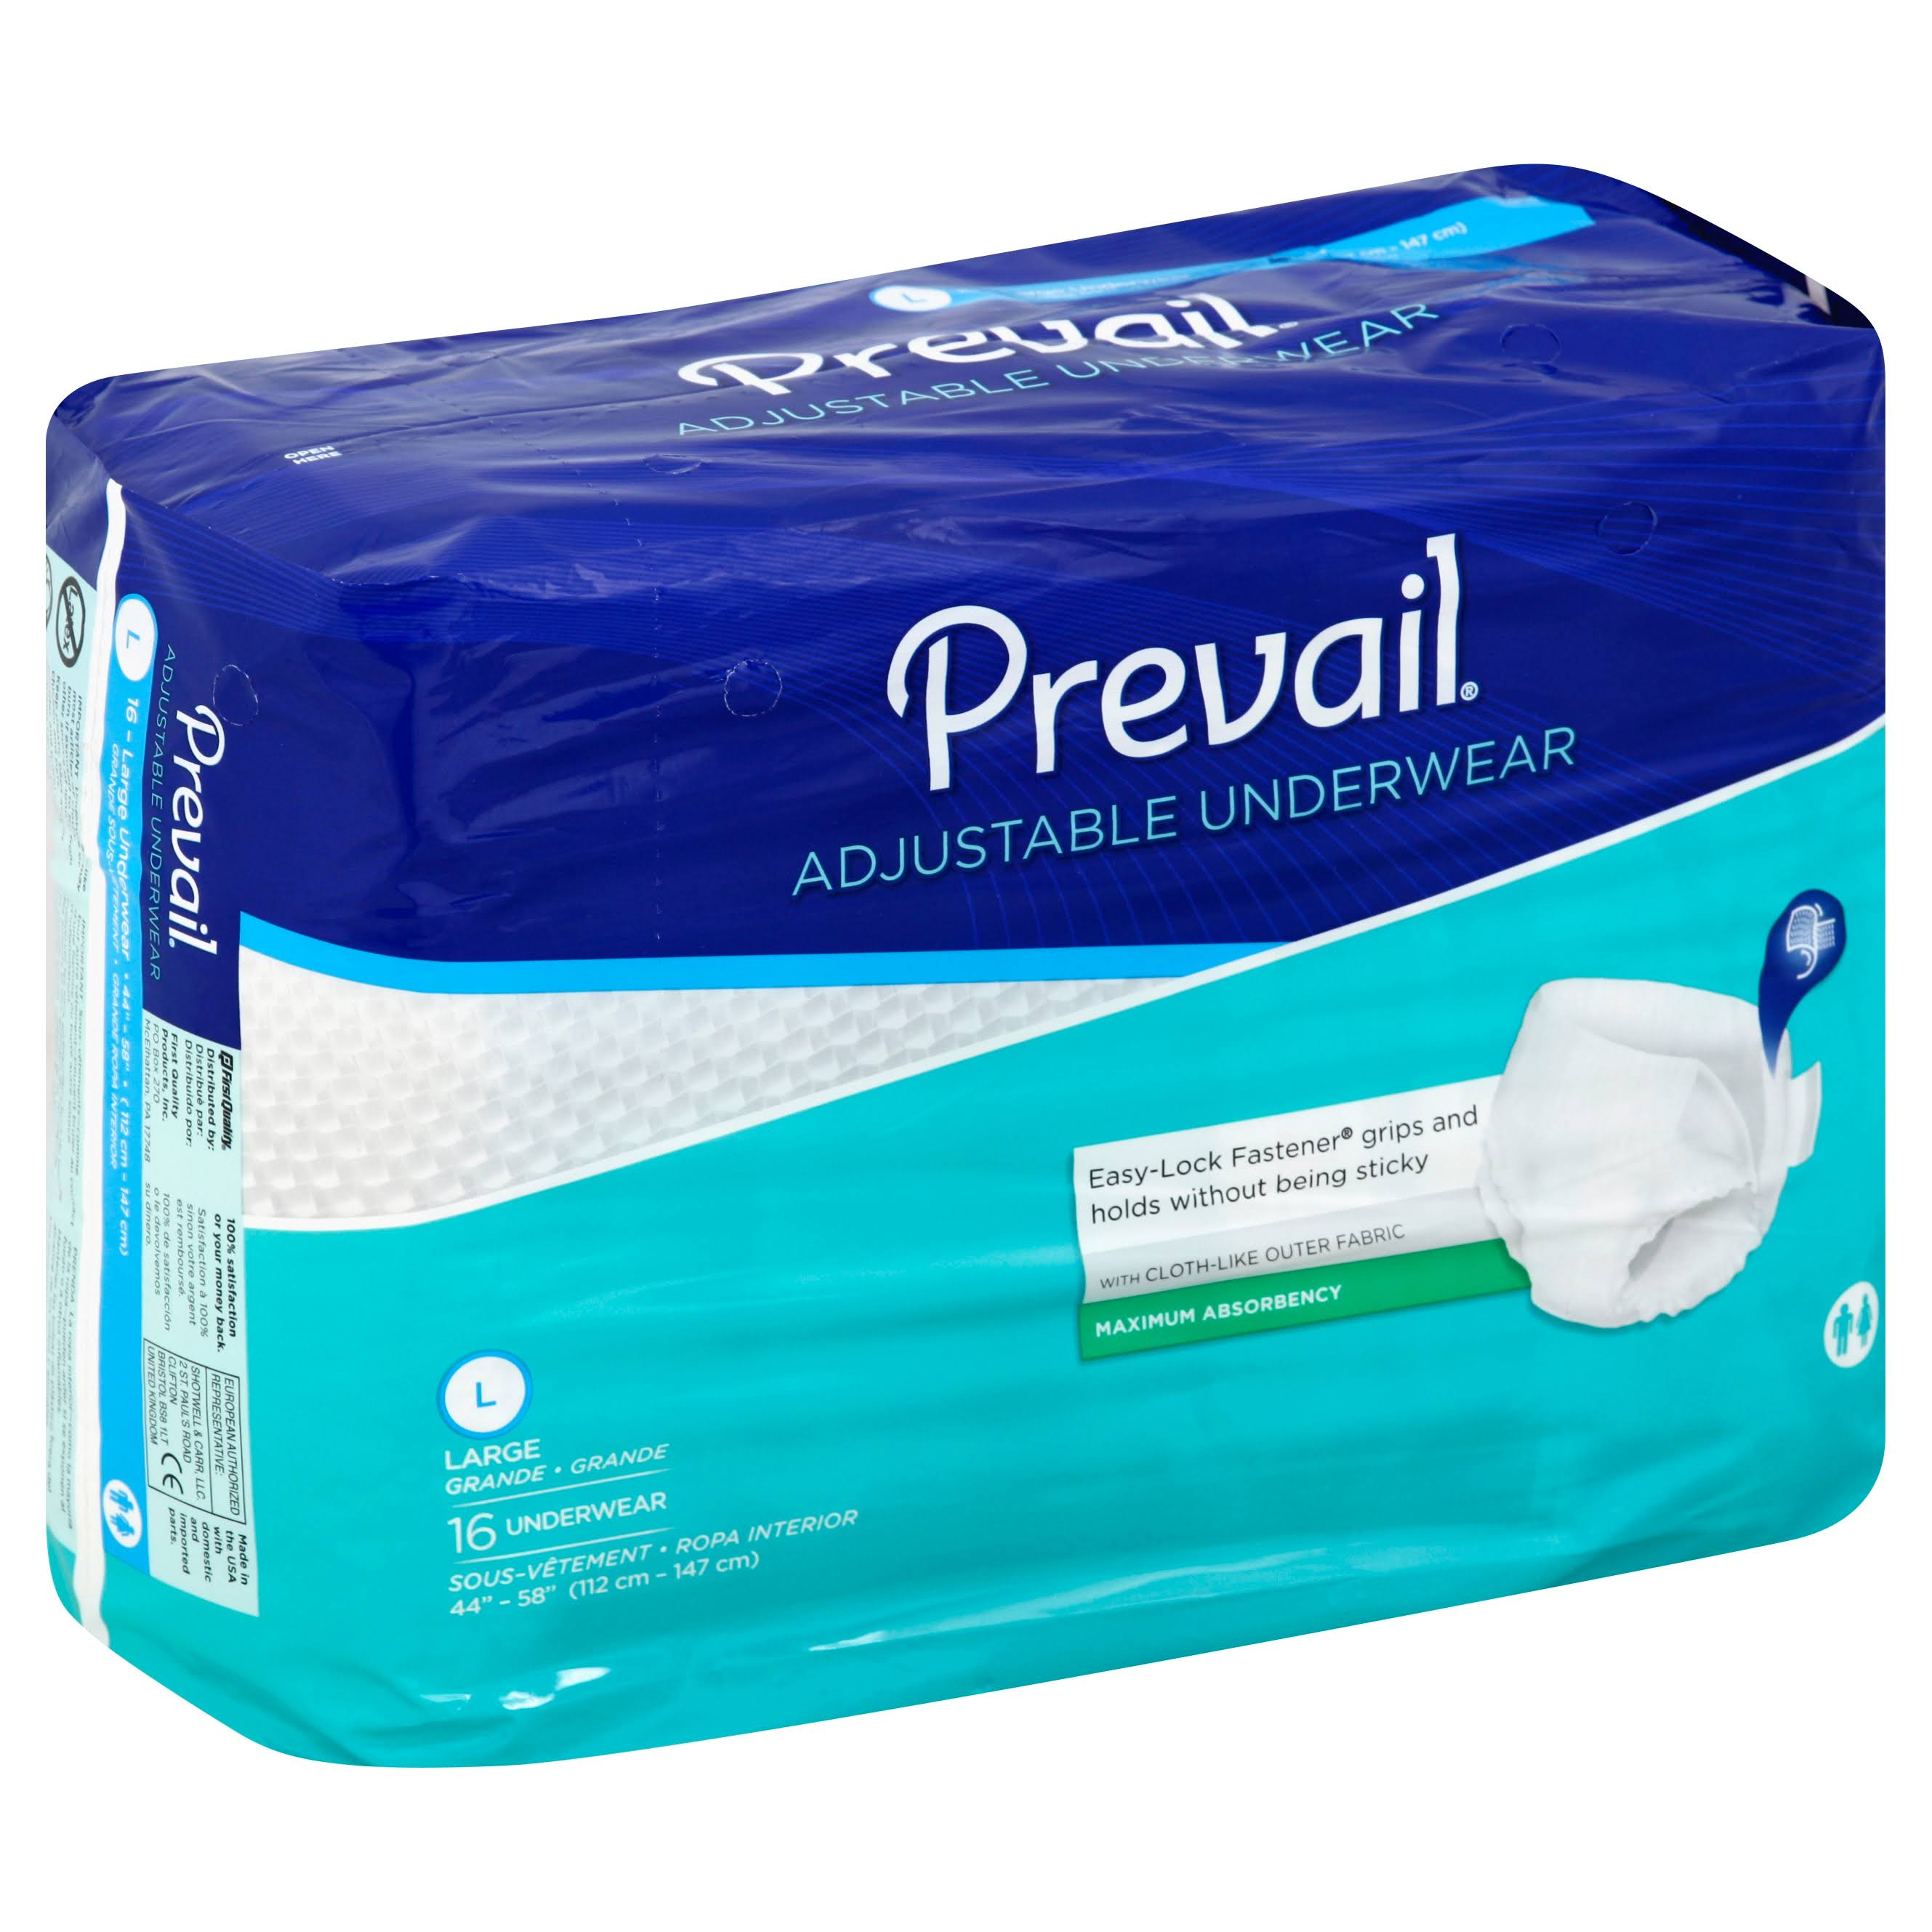 Prevail Incontinence Underwear - Maximum Absorbency, Large, 16ct